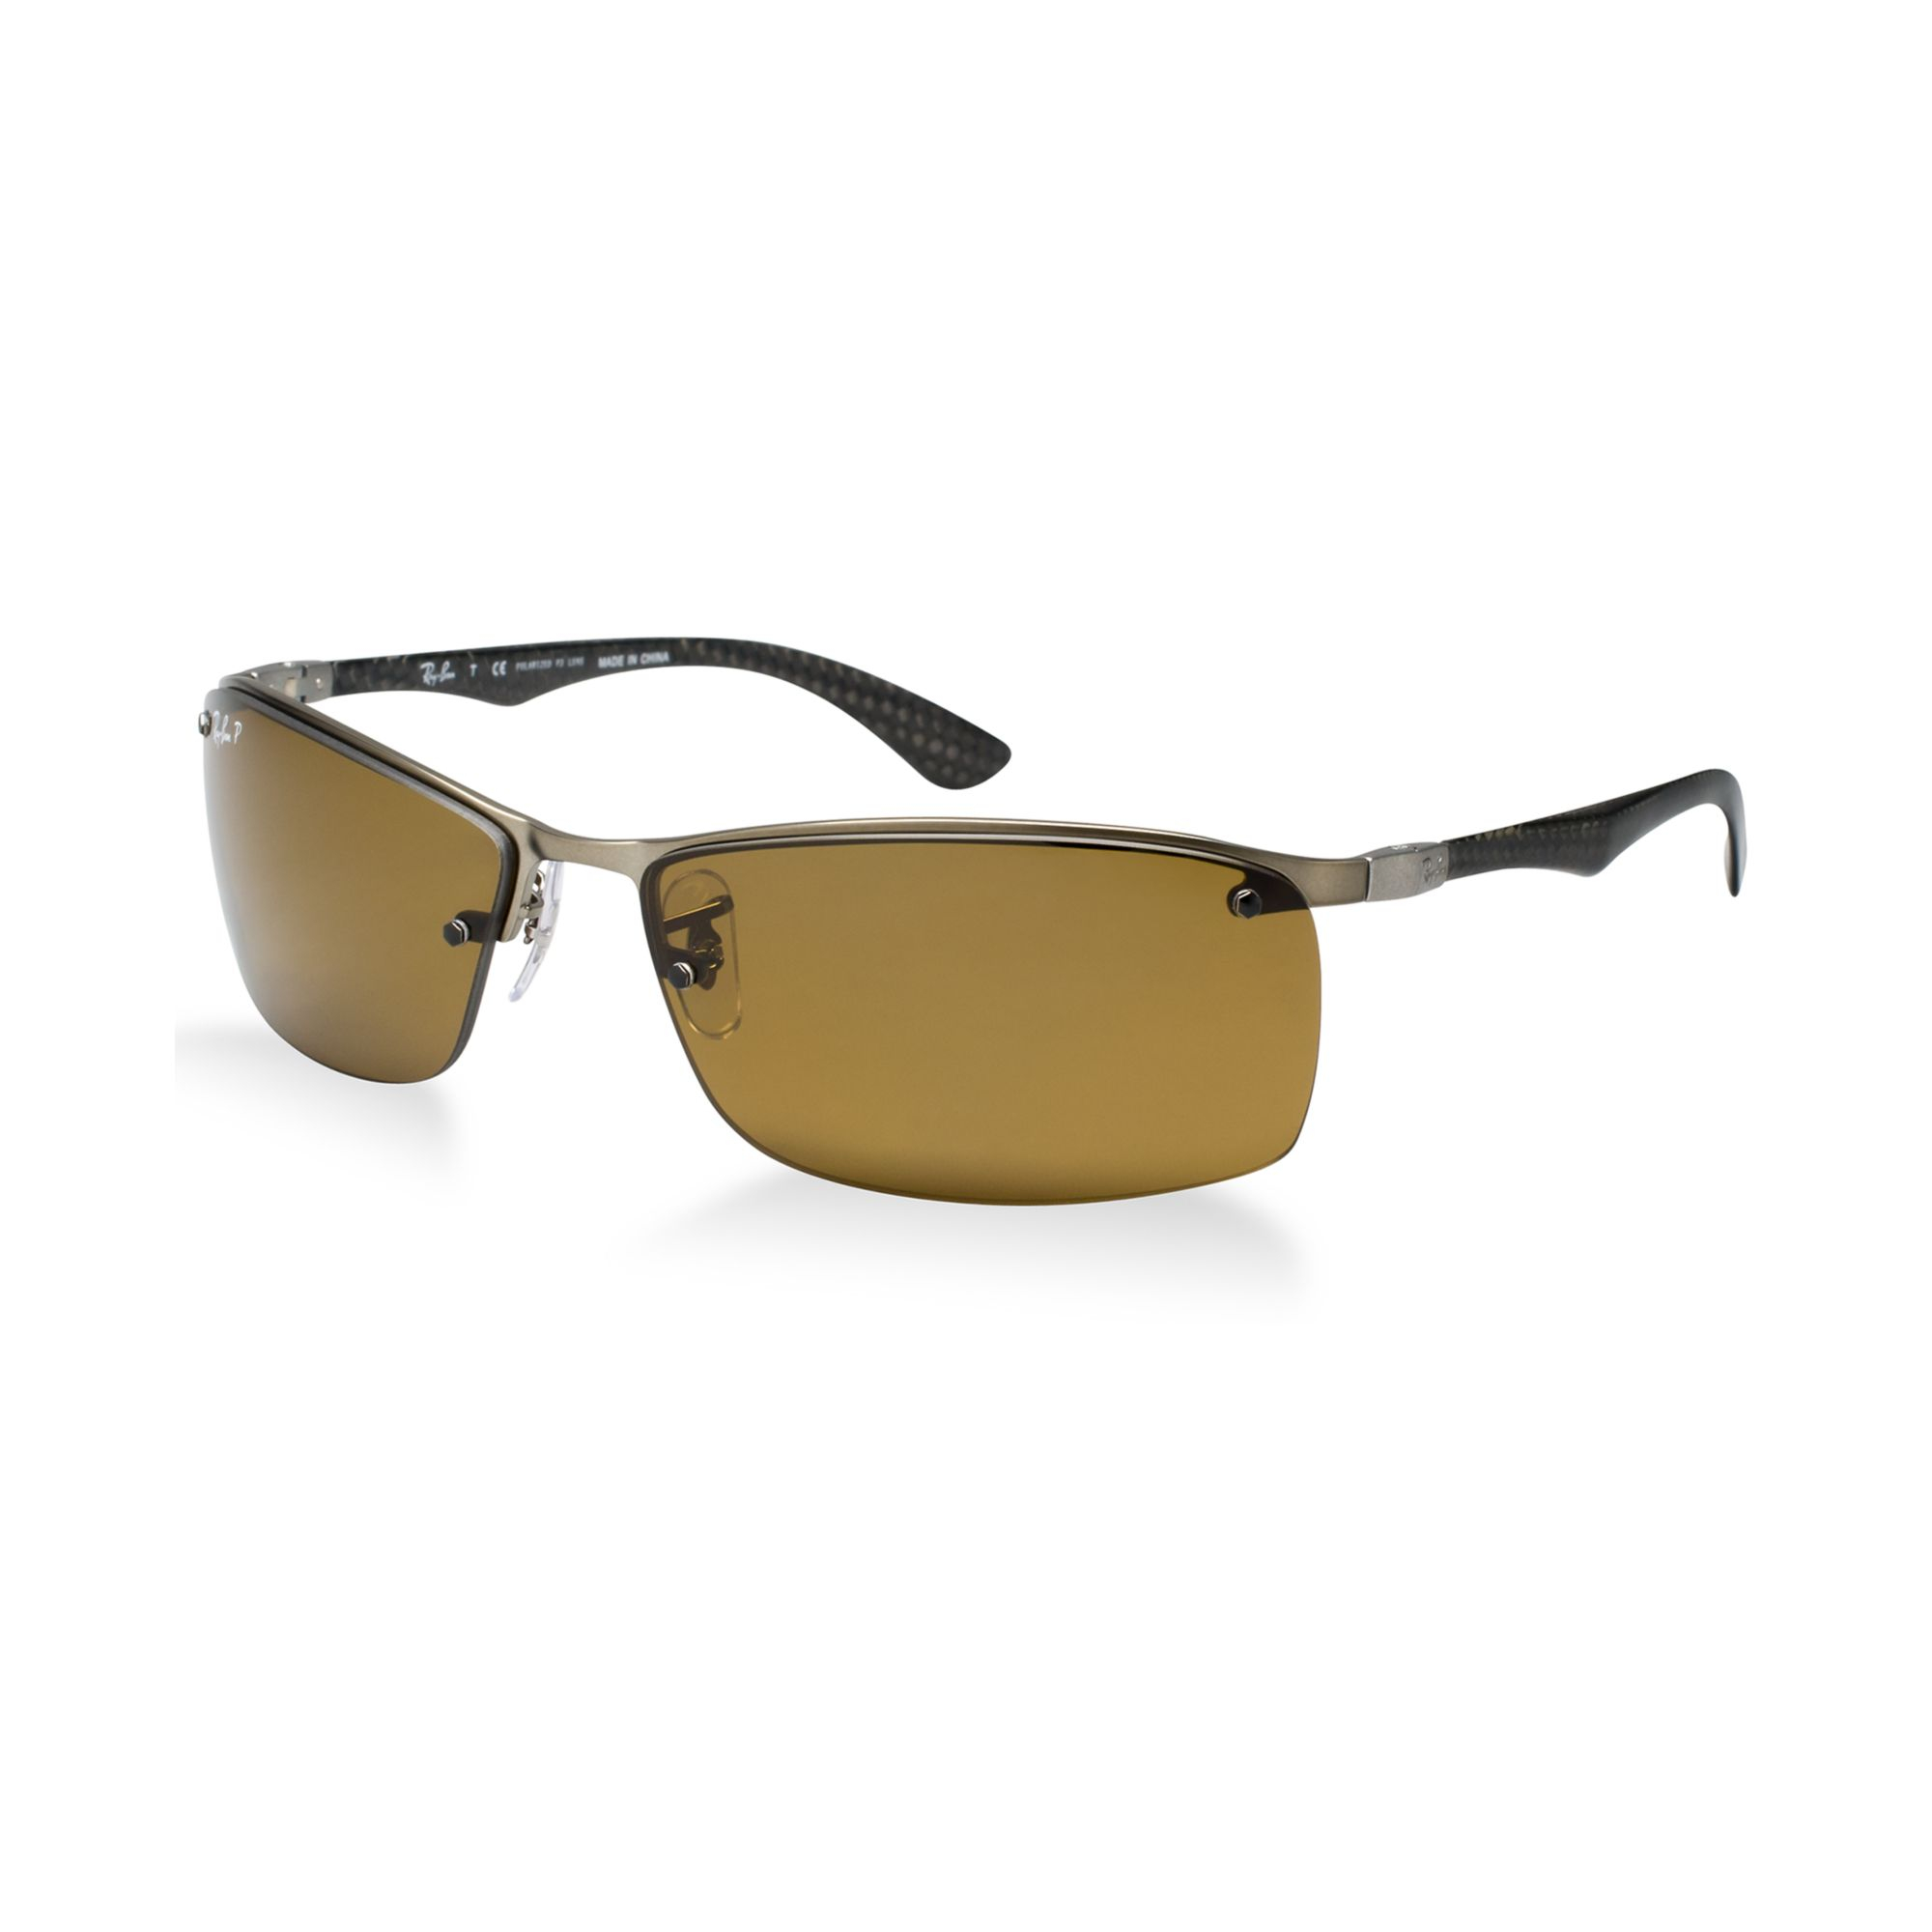 2a6aae7d0b Chinese Ray Ban Sunglasses « Heritage Malta